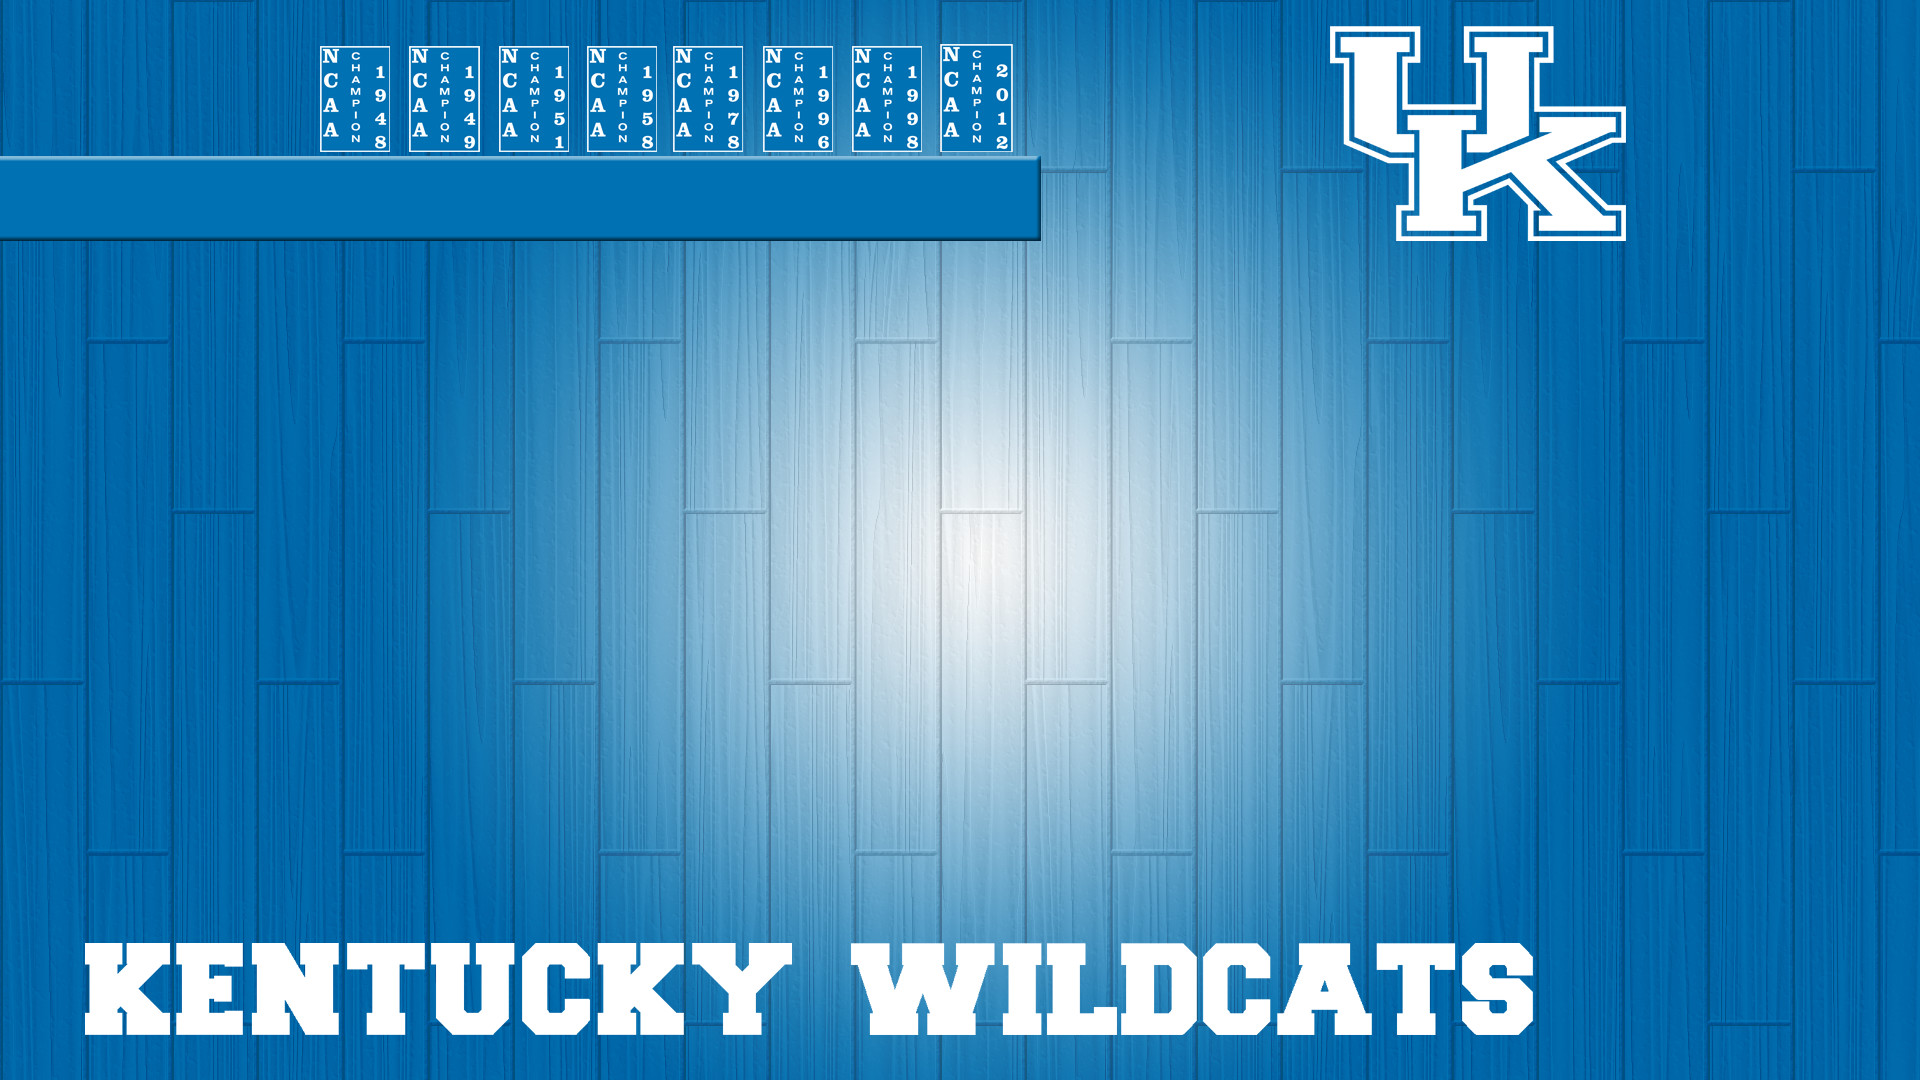 Uk Basketball: Basketball Wallpaper 2018 (59+ Images